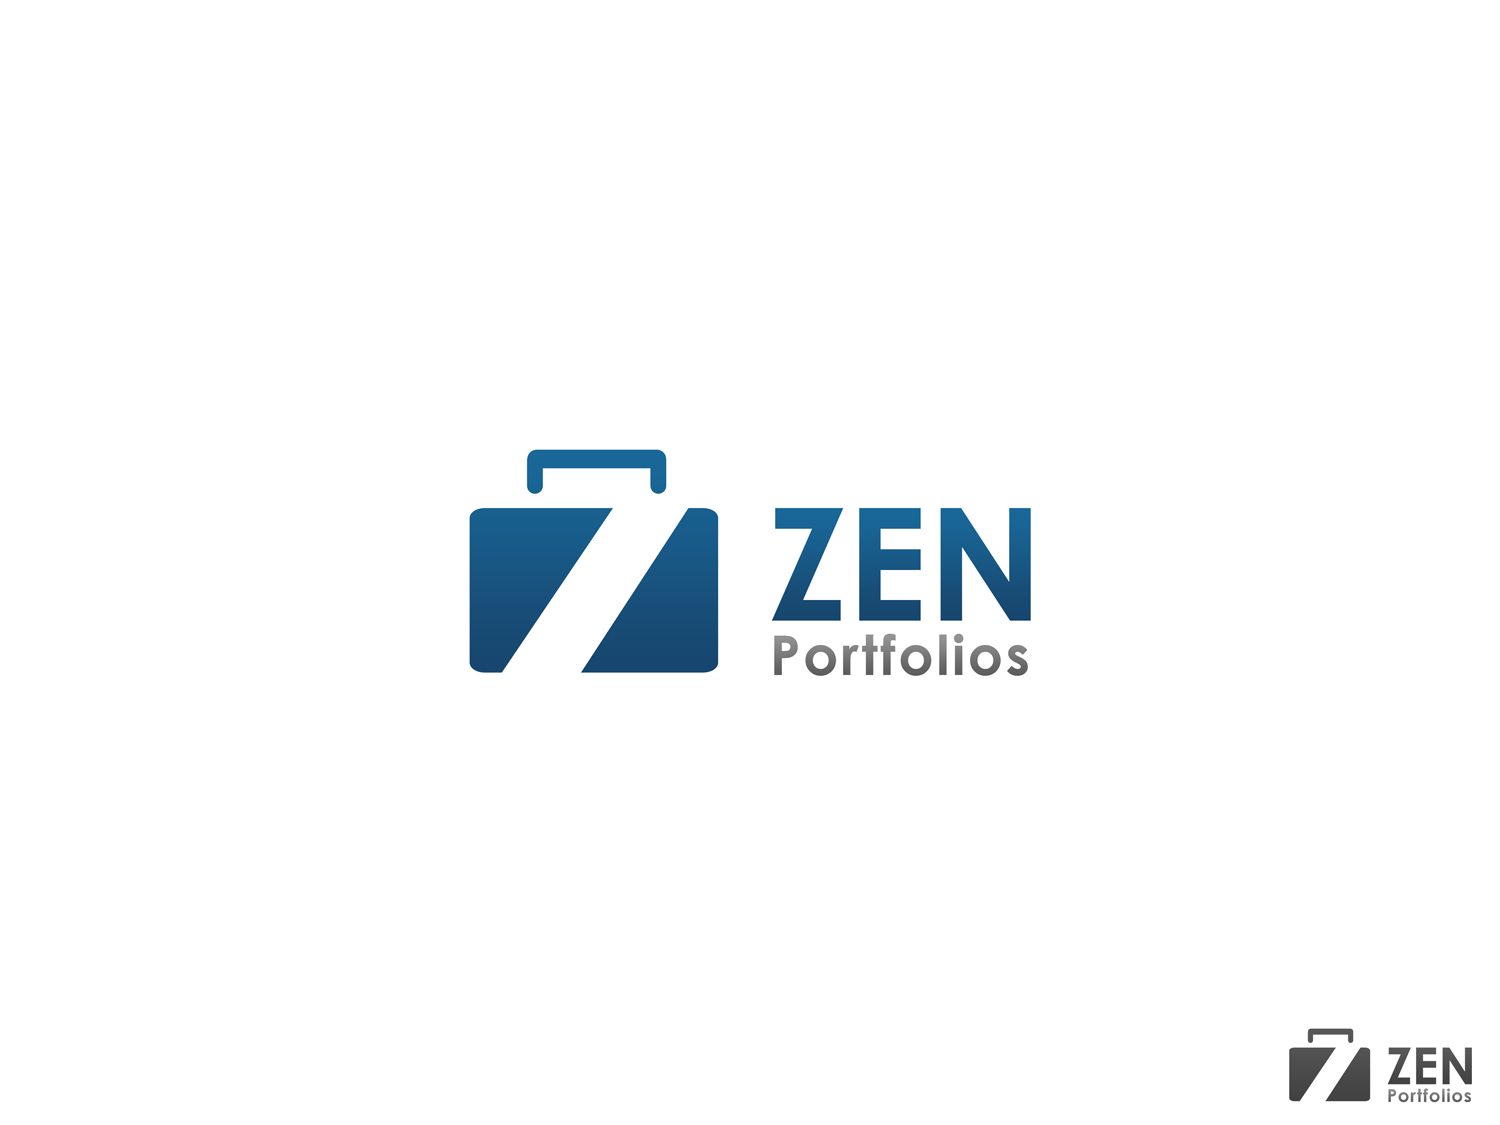 Logo Design by Qoaldjsk - Entry No. 116 in the Logo Design Contest New Logo Design for ZEN Portfolios.